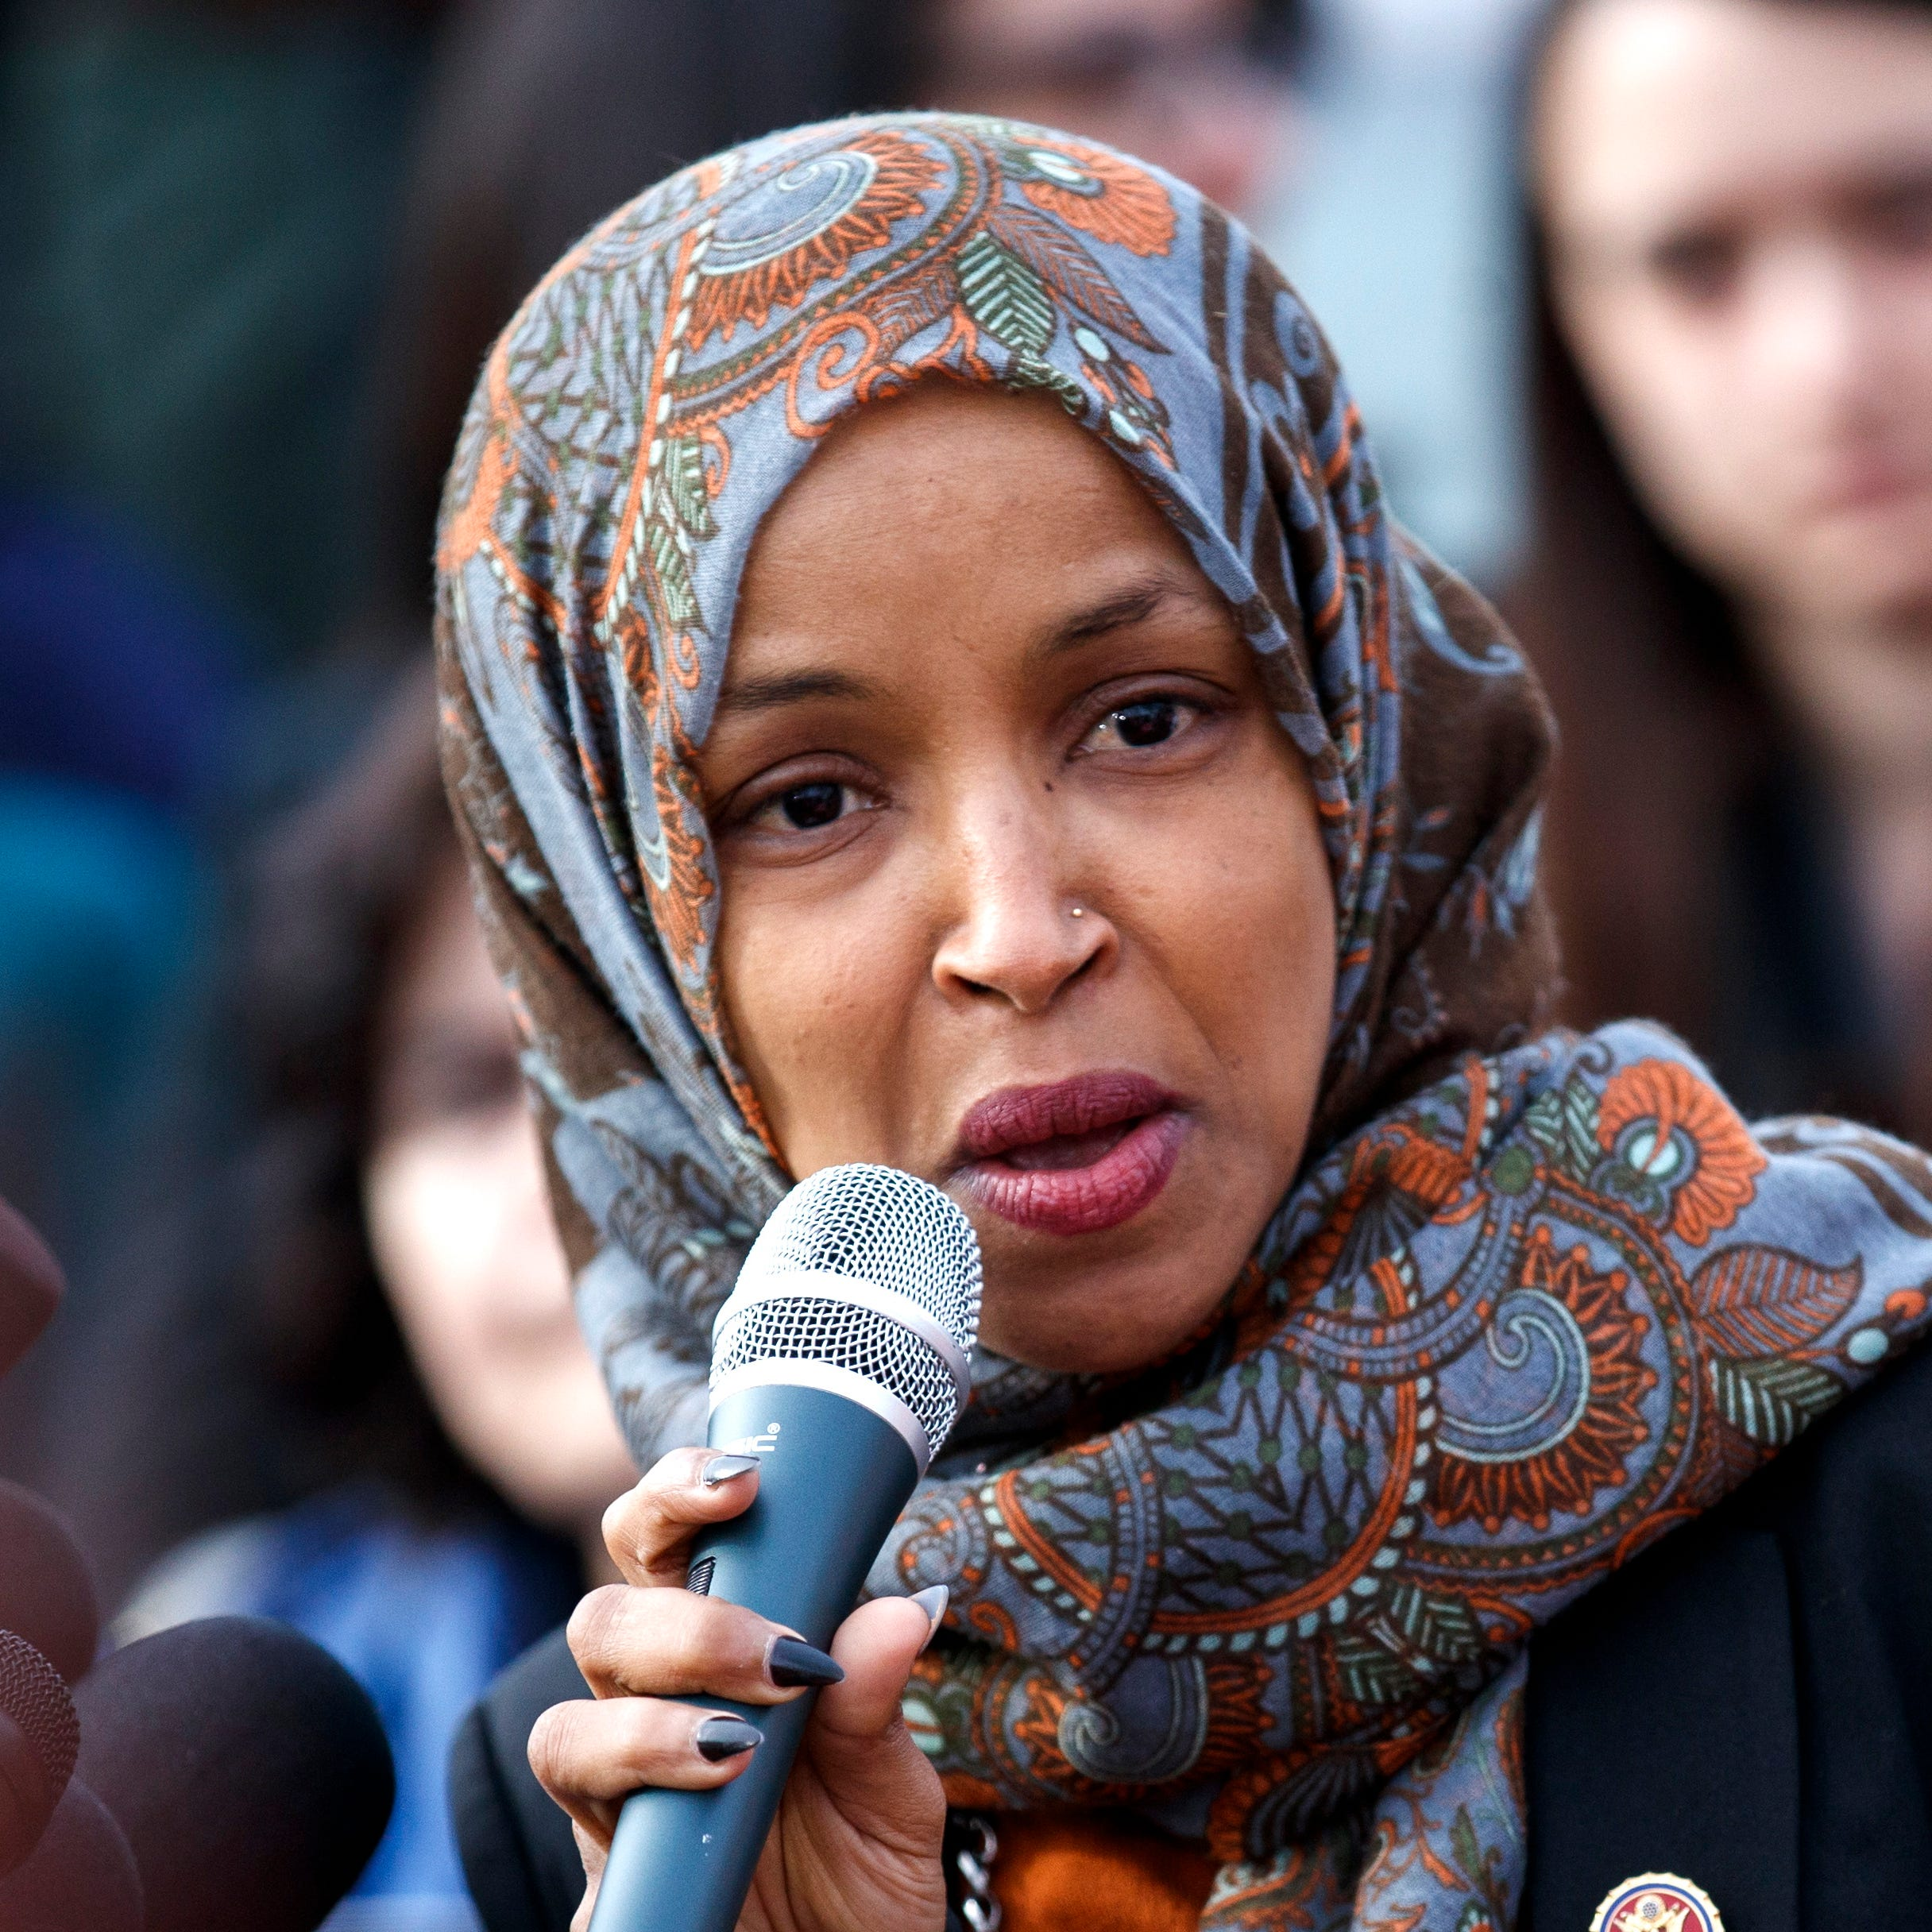 Shame on Muslim congresswoman for spewing anti-Israeli hatred: Letter